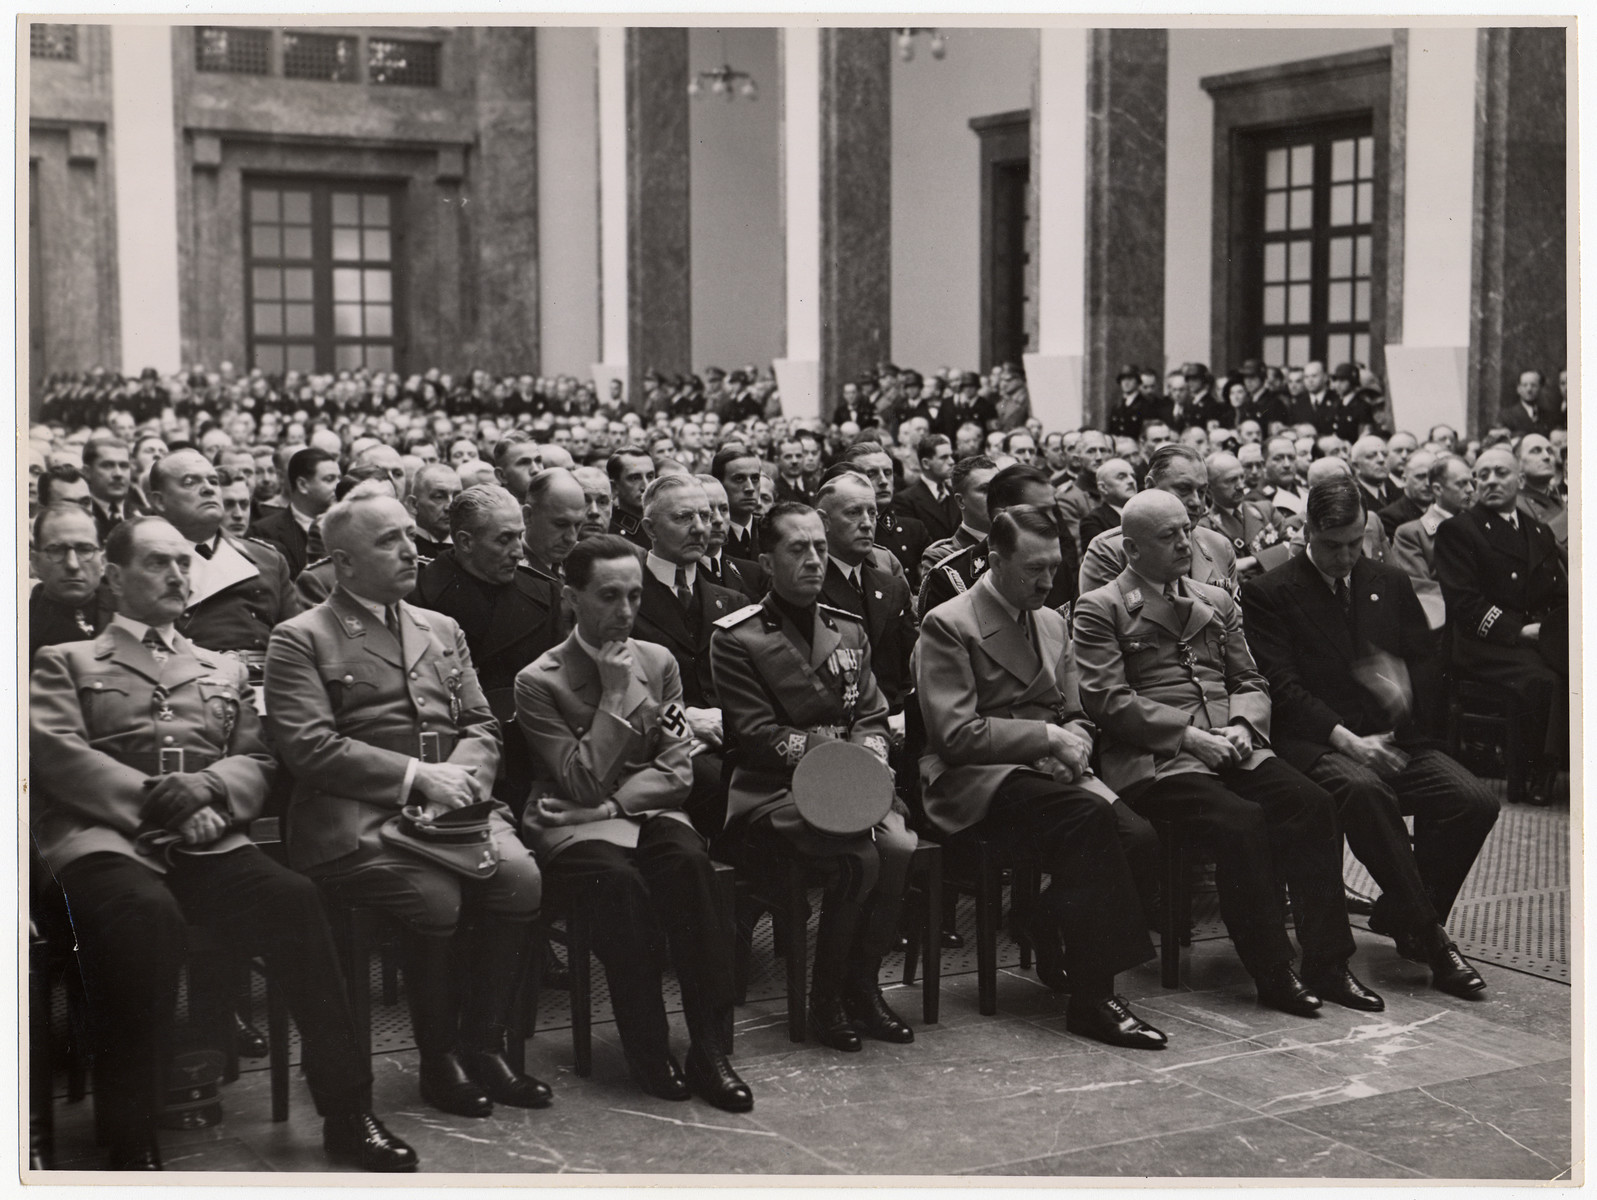 Adolf Hitler and other Nazi officials gather in a large room lto listen to a speaker.  Front tow: Robert Ley (second from the left), Joseph Goebbels (third from the left).  Behind him to the right in the second row is Hjalmar Schacht and Hermann Goering is seated in the second row on the aisle.